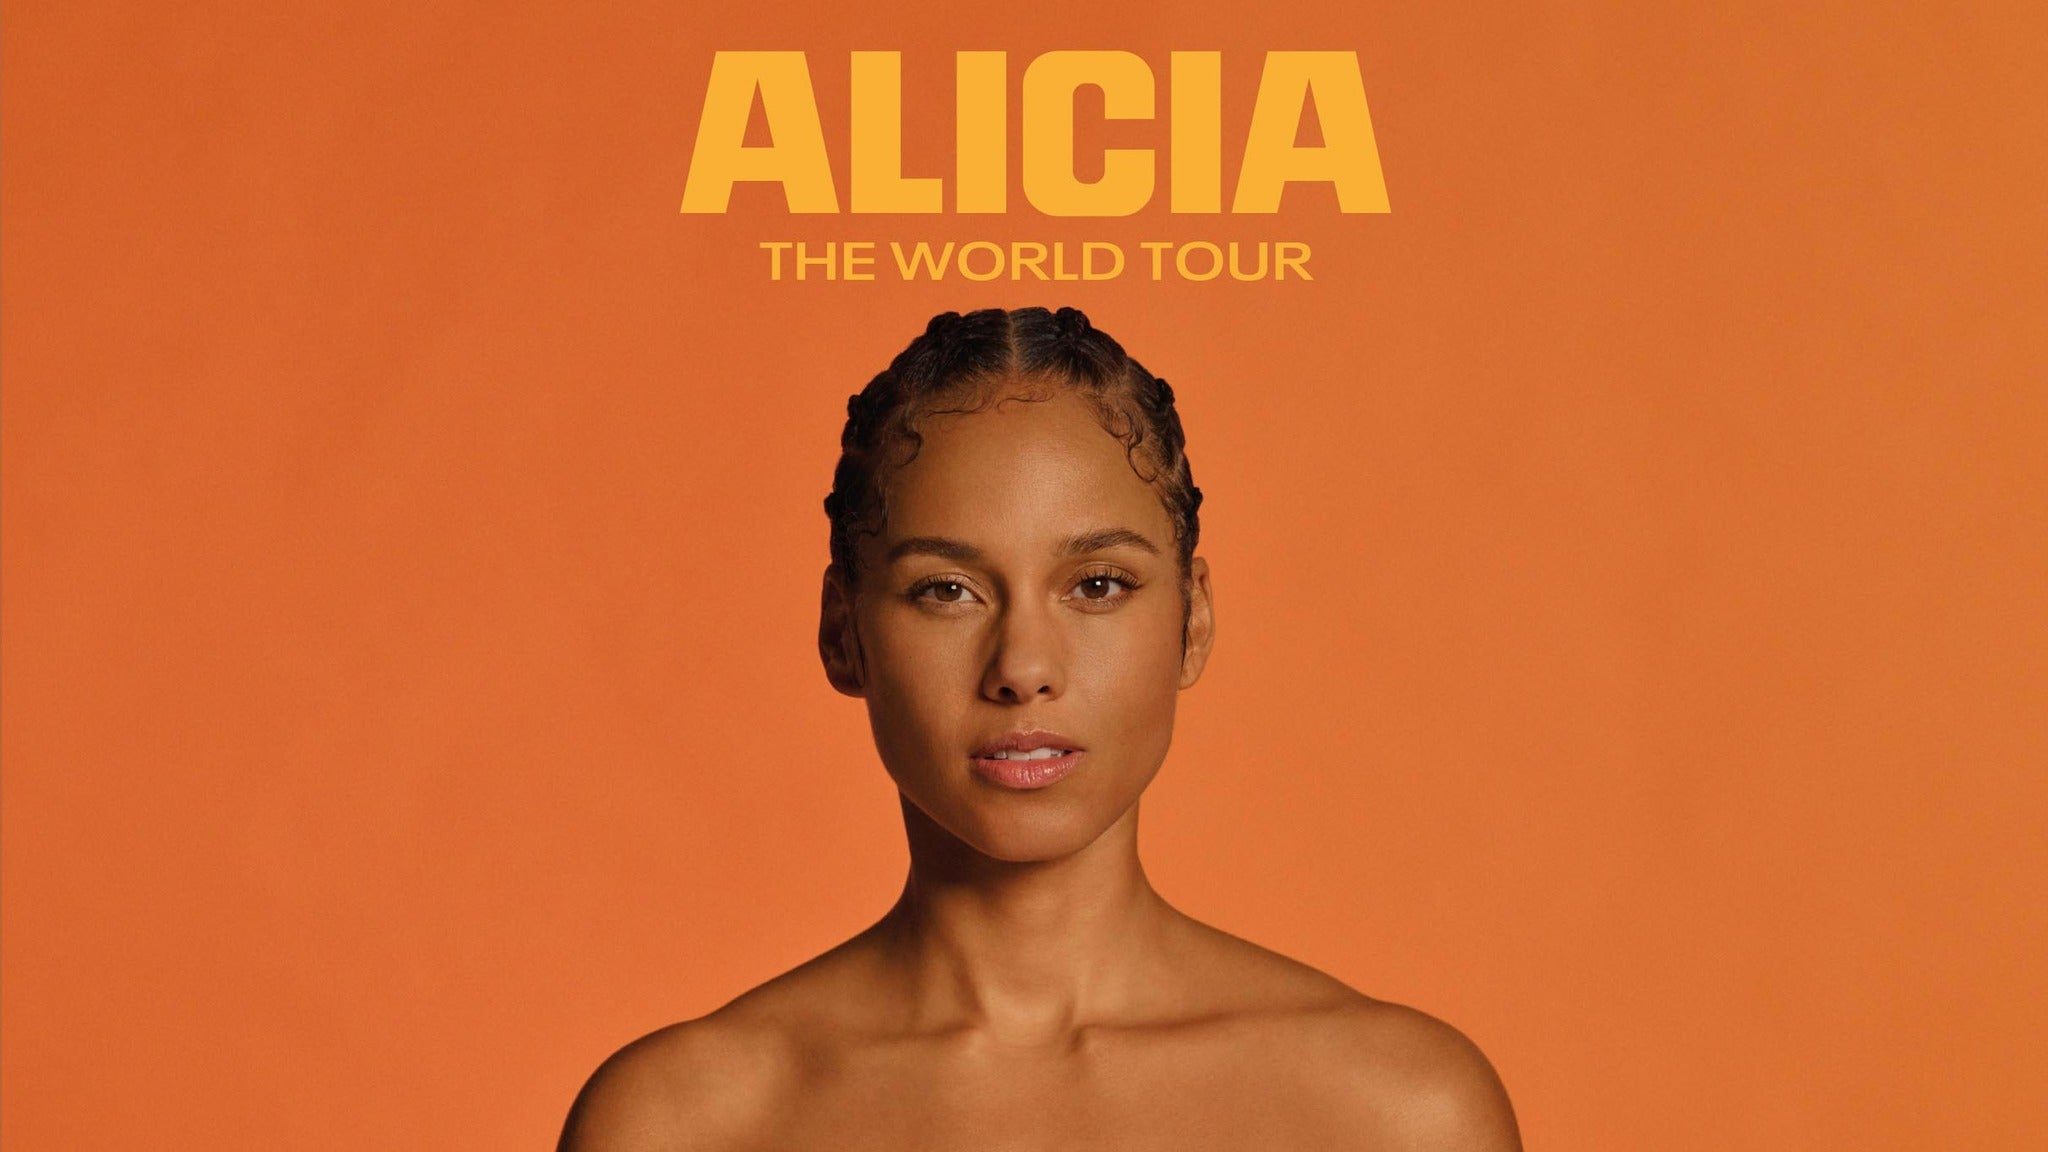 ALICIA The World Tour at The Masonic